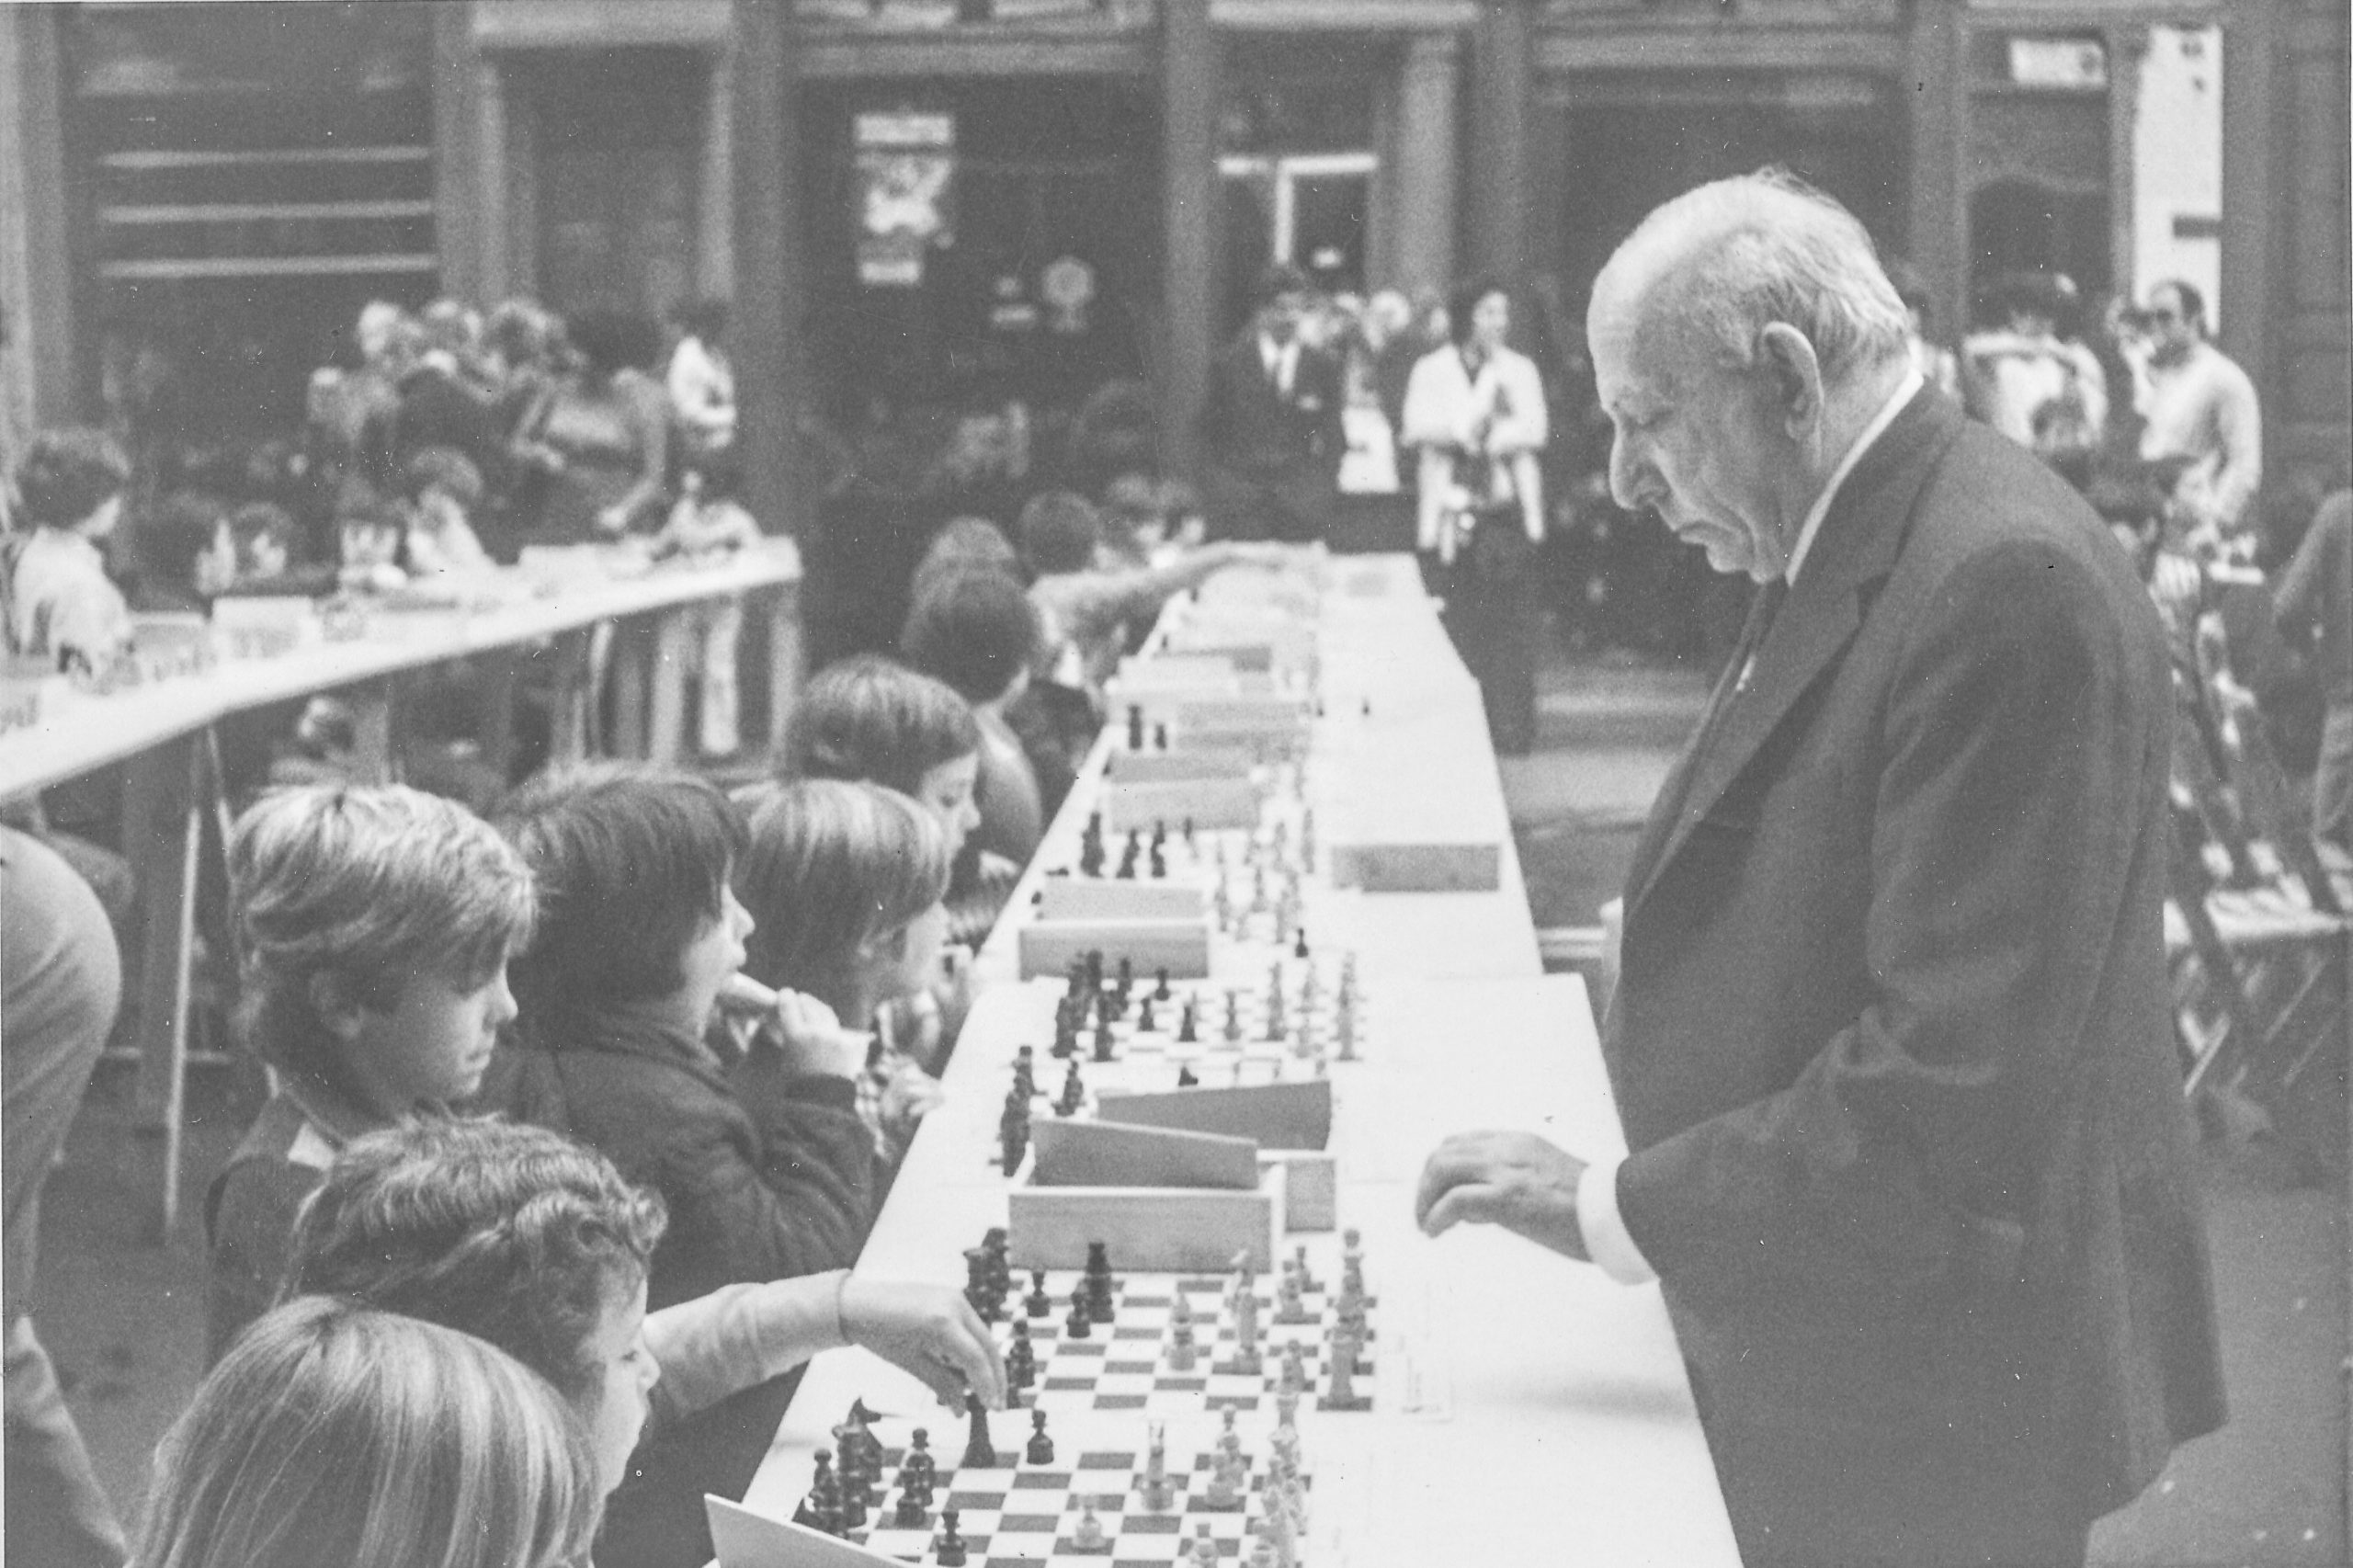 "Harry was invited because it was the 50th anniversary of his victory in the London Boys 1929 a success which he often referred to in his <em>Times</em> column. There were seven 30-board simuls that day, the top three being England Juniors v USSR (Spassky, Vasyukov, Kochiev) where Spassky had the worst simultaneous result of his career. No 4 was by <a href=""http://britishchessnews.com/2020/04/04/happy-birthday-gm-murray-graham-chandler-mnzm-04-iv-1960/"">Murray Chandler</a>, Harry was No5 and the others by <a href=""http://britishchessnews.com/2020/07/07/bcn-remembers-im-andrew-whiteley-09-vi-1947-07-vii-2014/"">Whiteley</a> and <a href=""http://britishchessnews.com/2020/07/08/remembering-fm-david-edward-rumens-23-ix-1939-08-vii-2017/"">Rumens</a>. The juniors who played the Russians were personally invited."